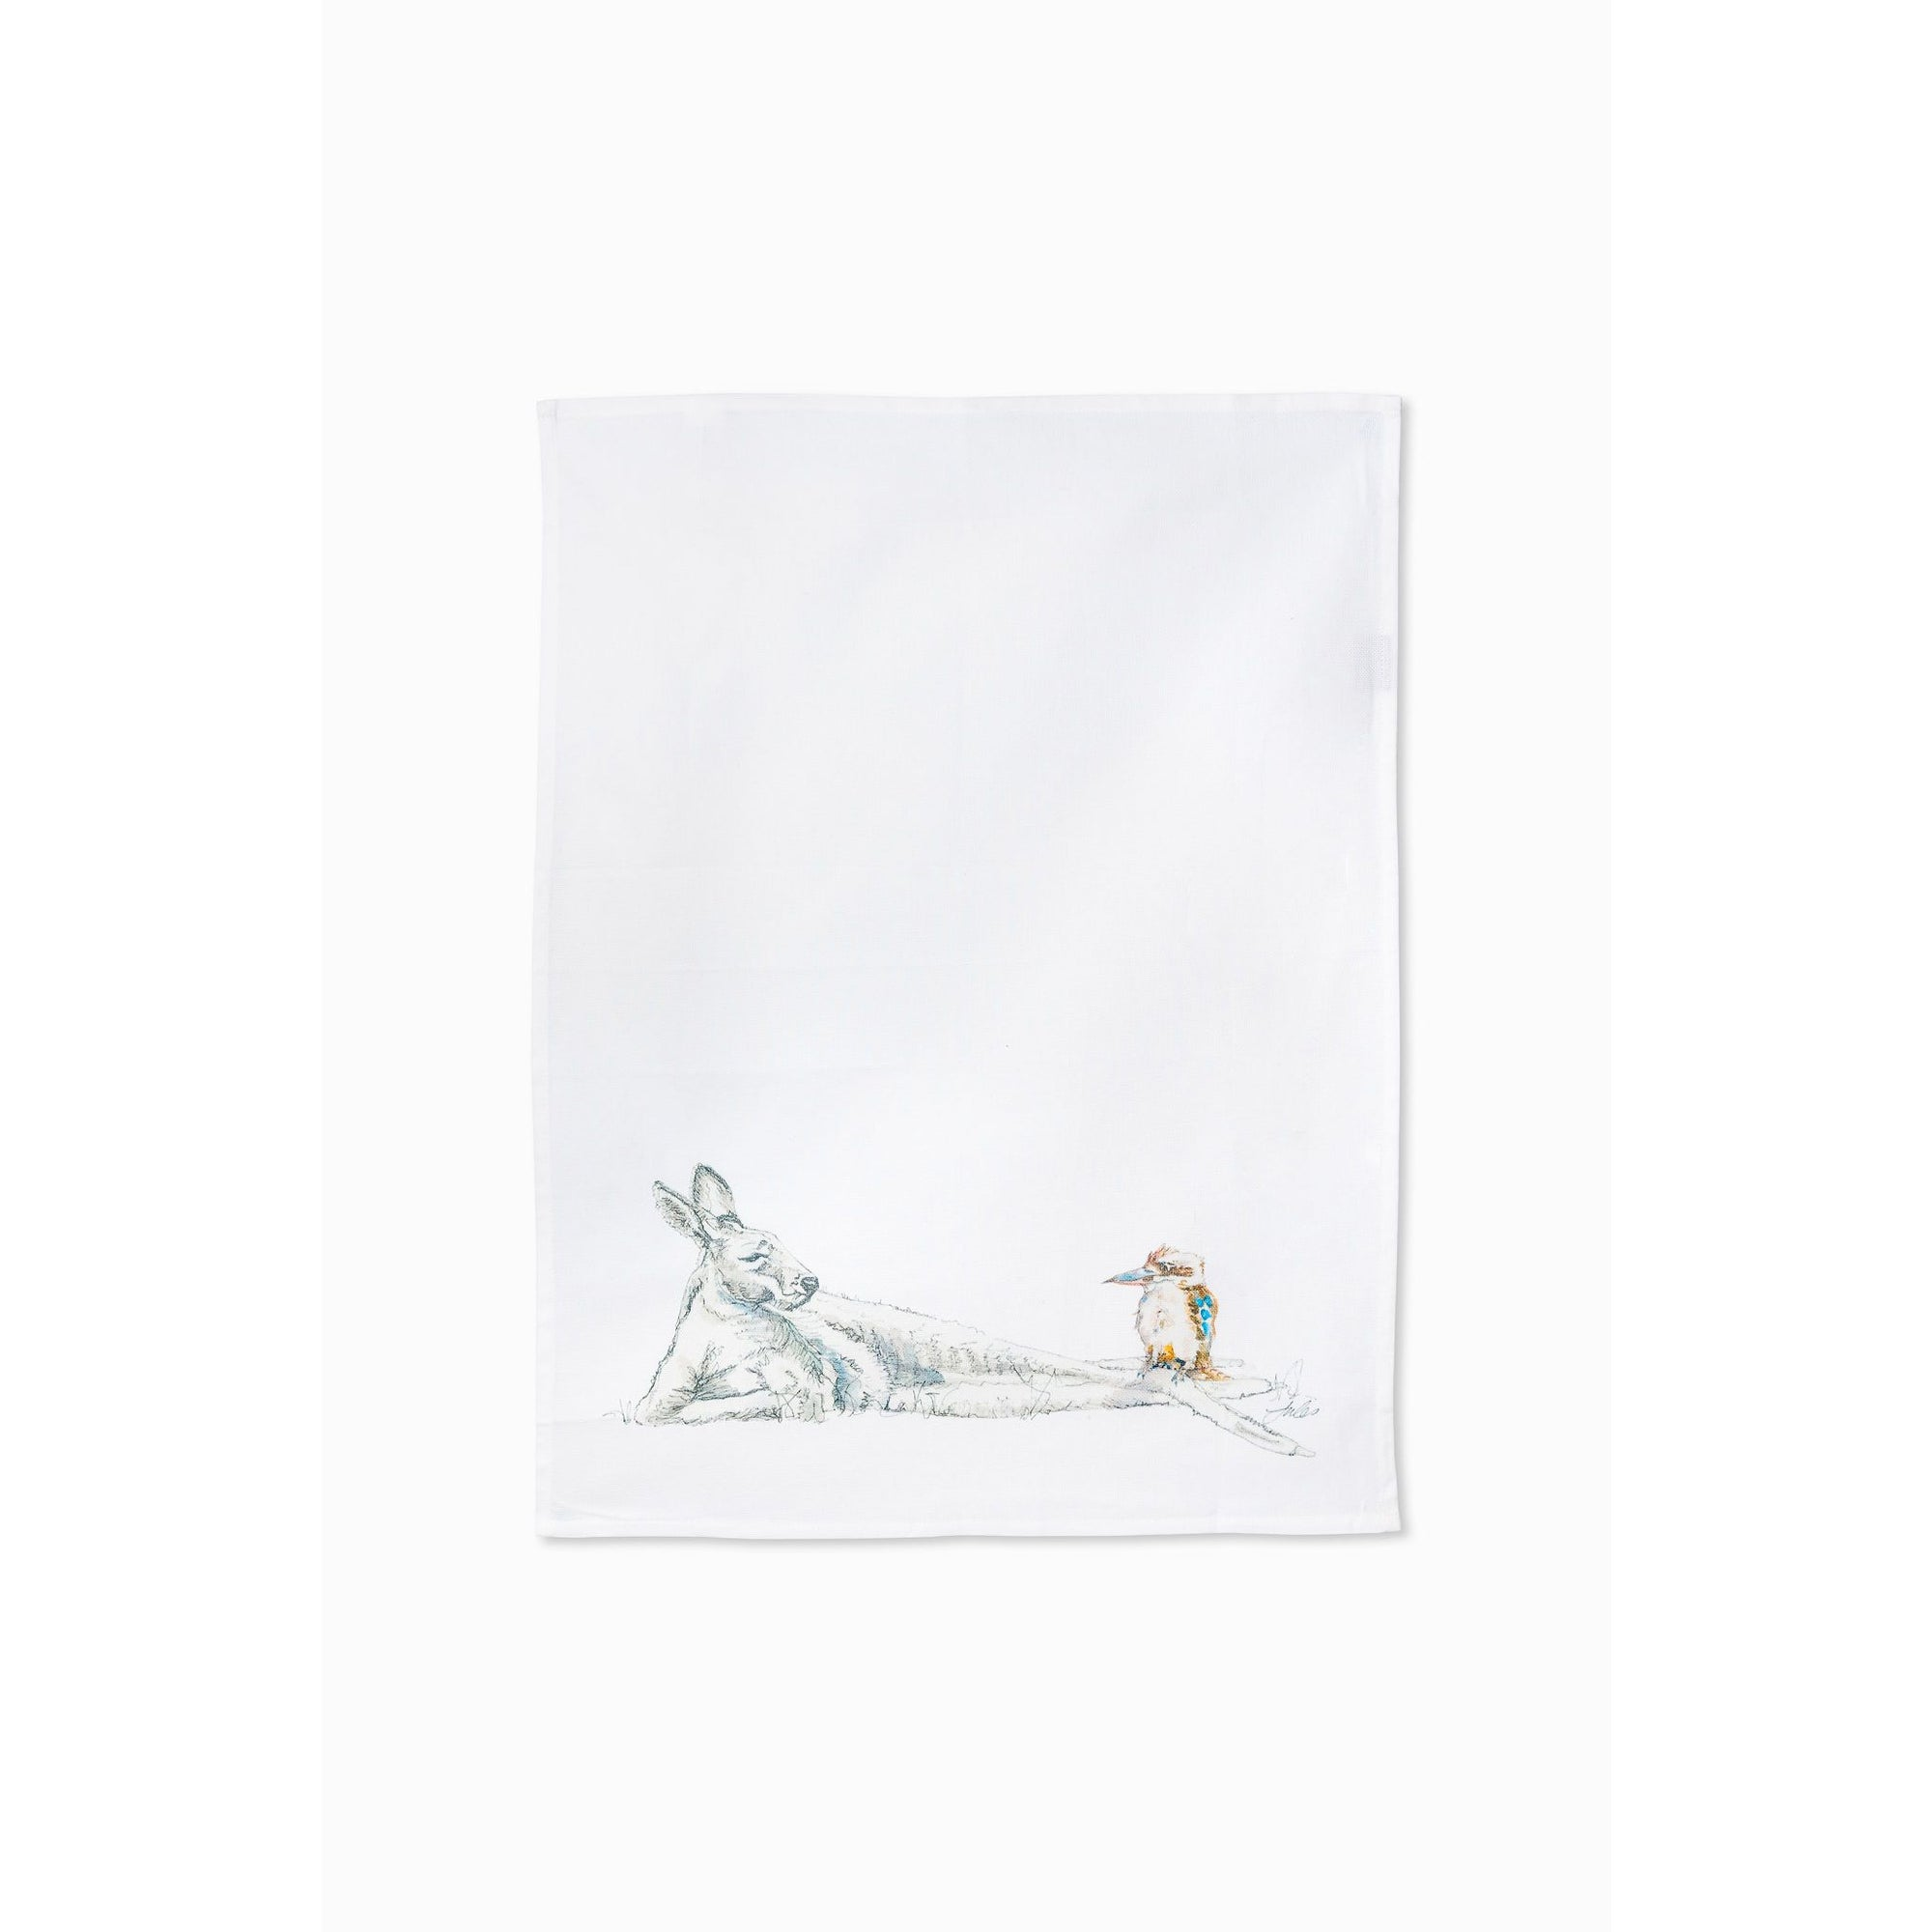 Kangaroo and Kookaburra tea towel - Stylish Australiana - Ethical Australian Gifts and Souvenirs